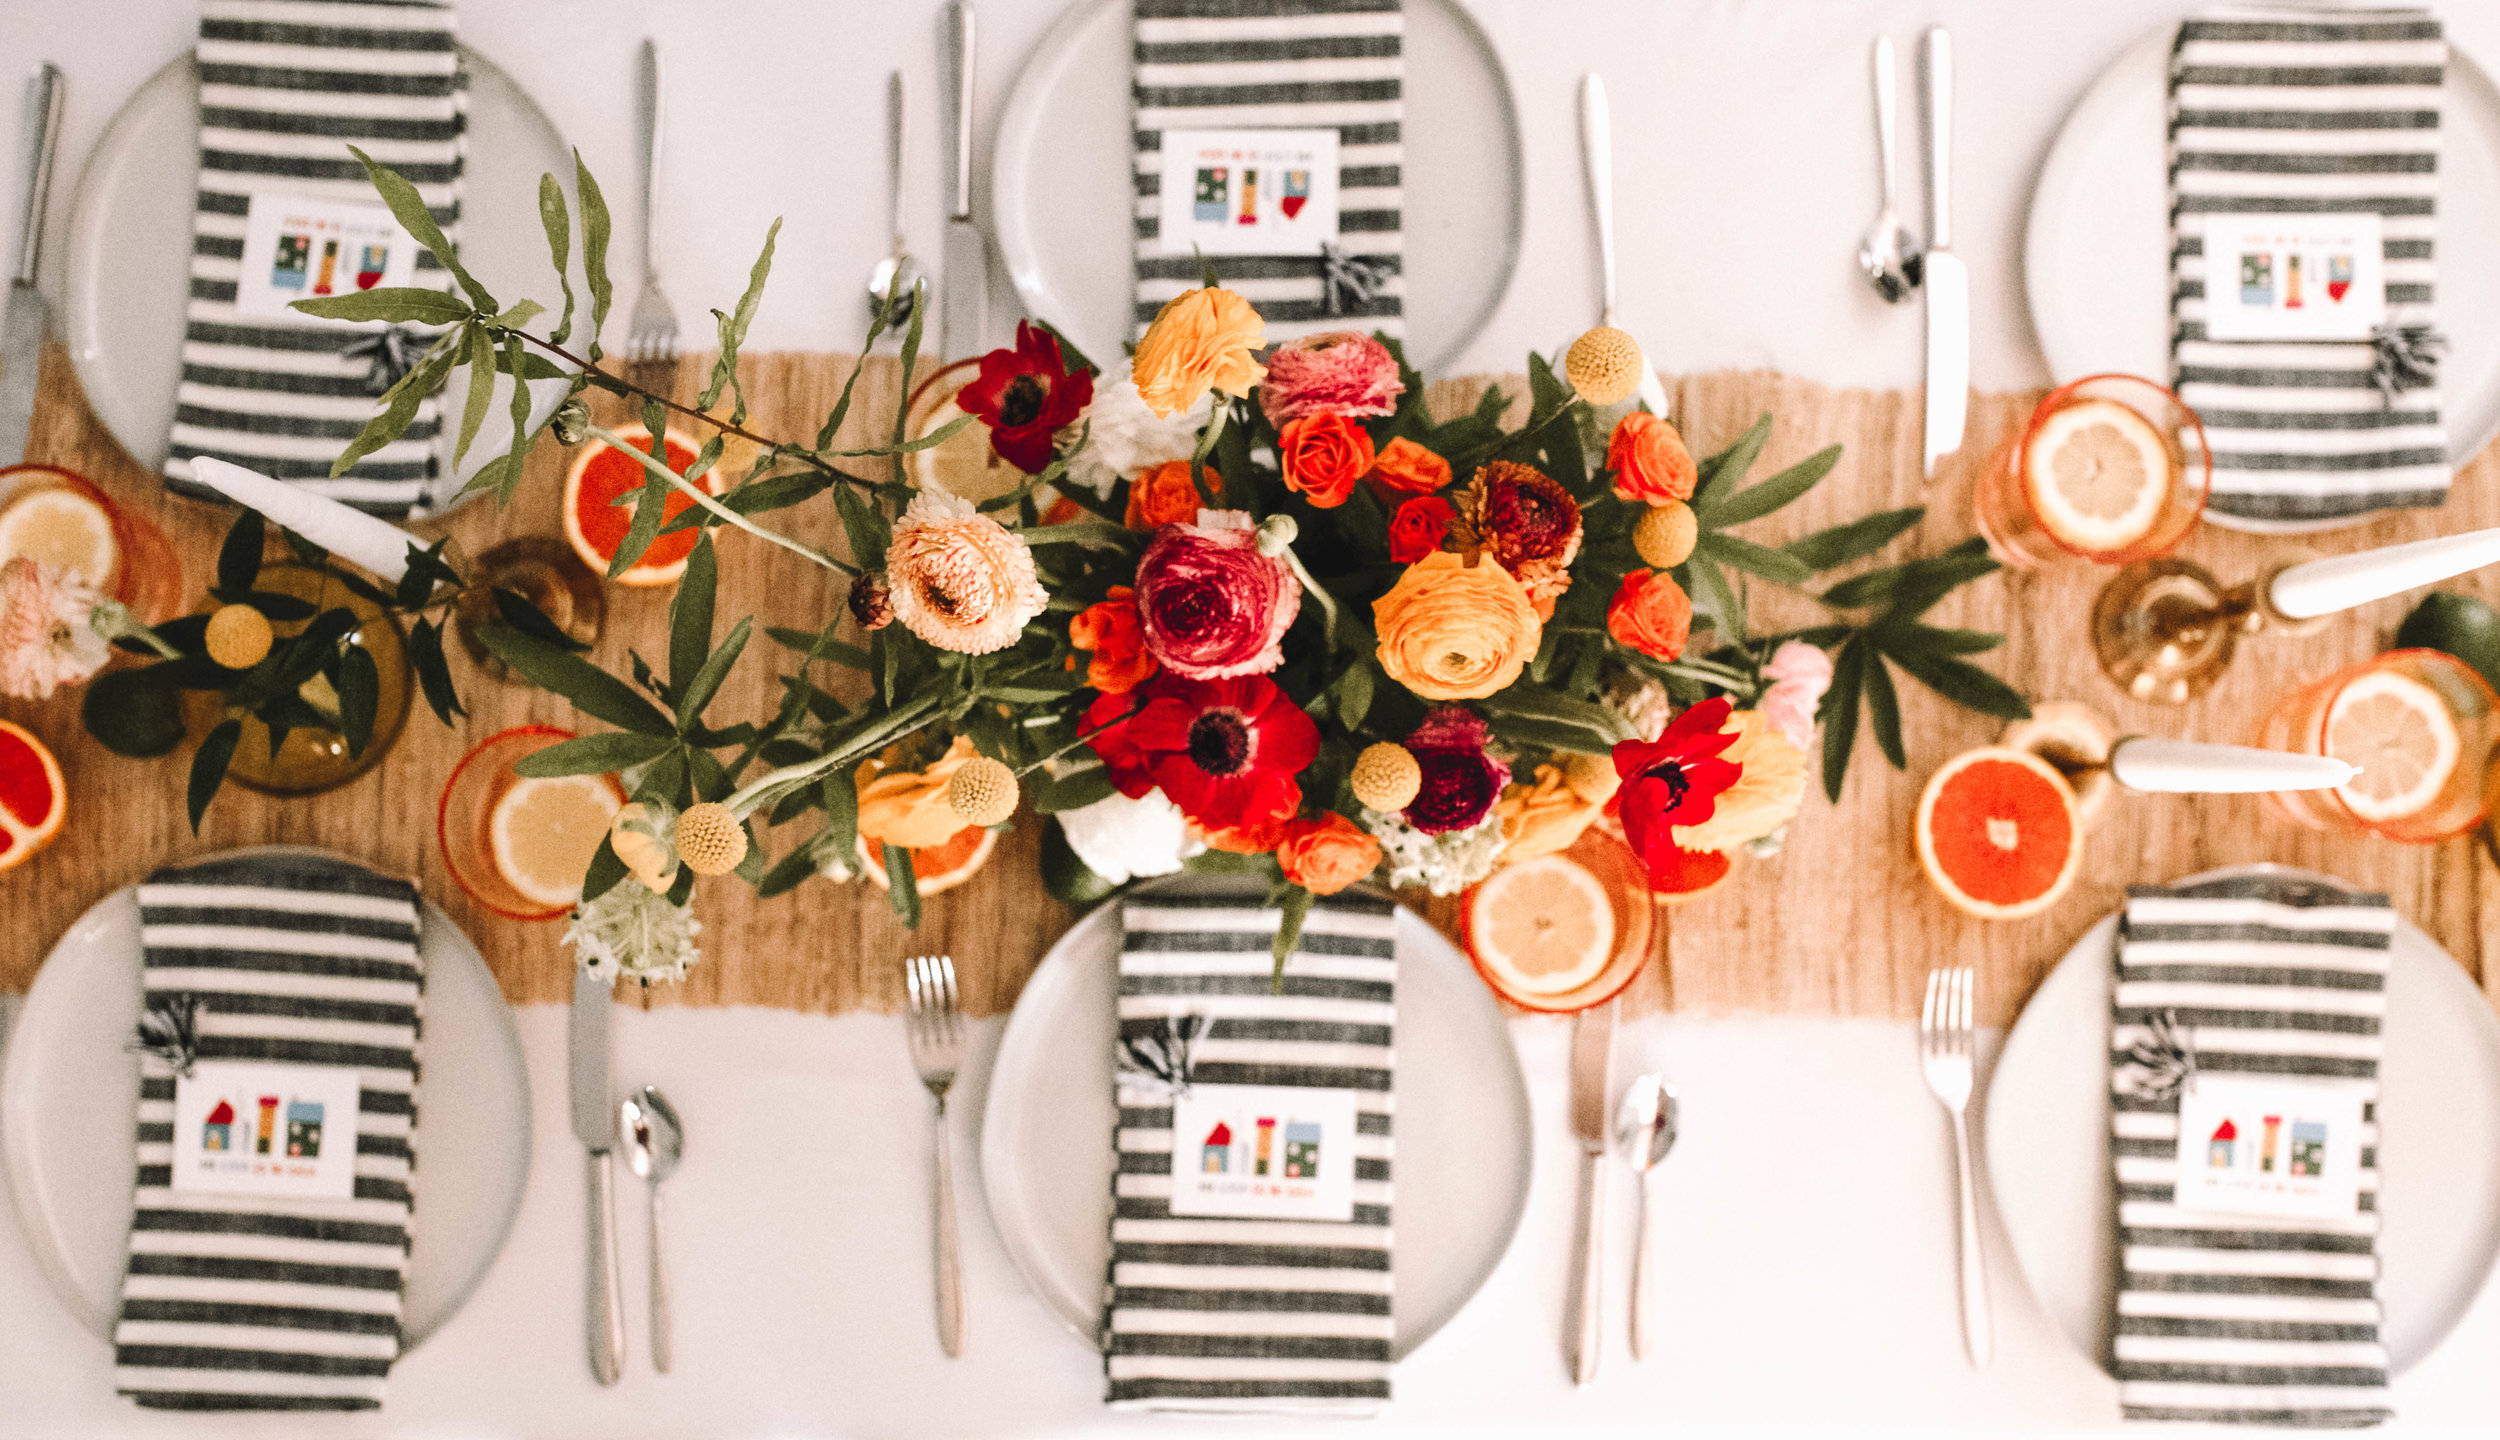 Beautful photos by,  @abbeyeaves . Tablescape by,  @christiburnett. Flowers by  @naturespoetryfloraldesign